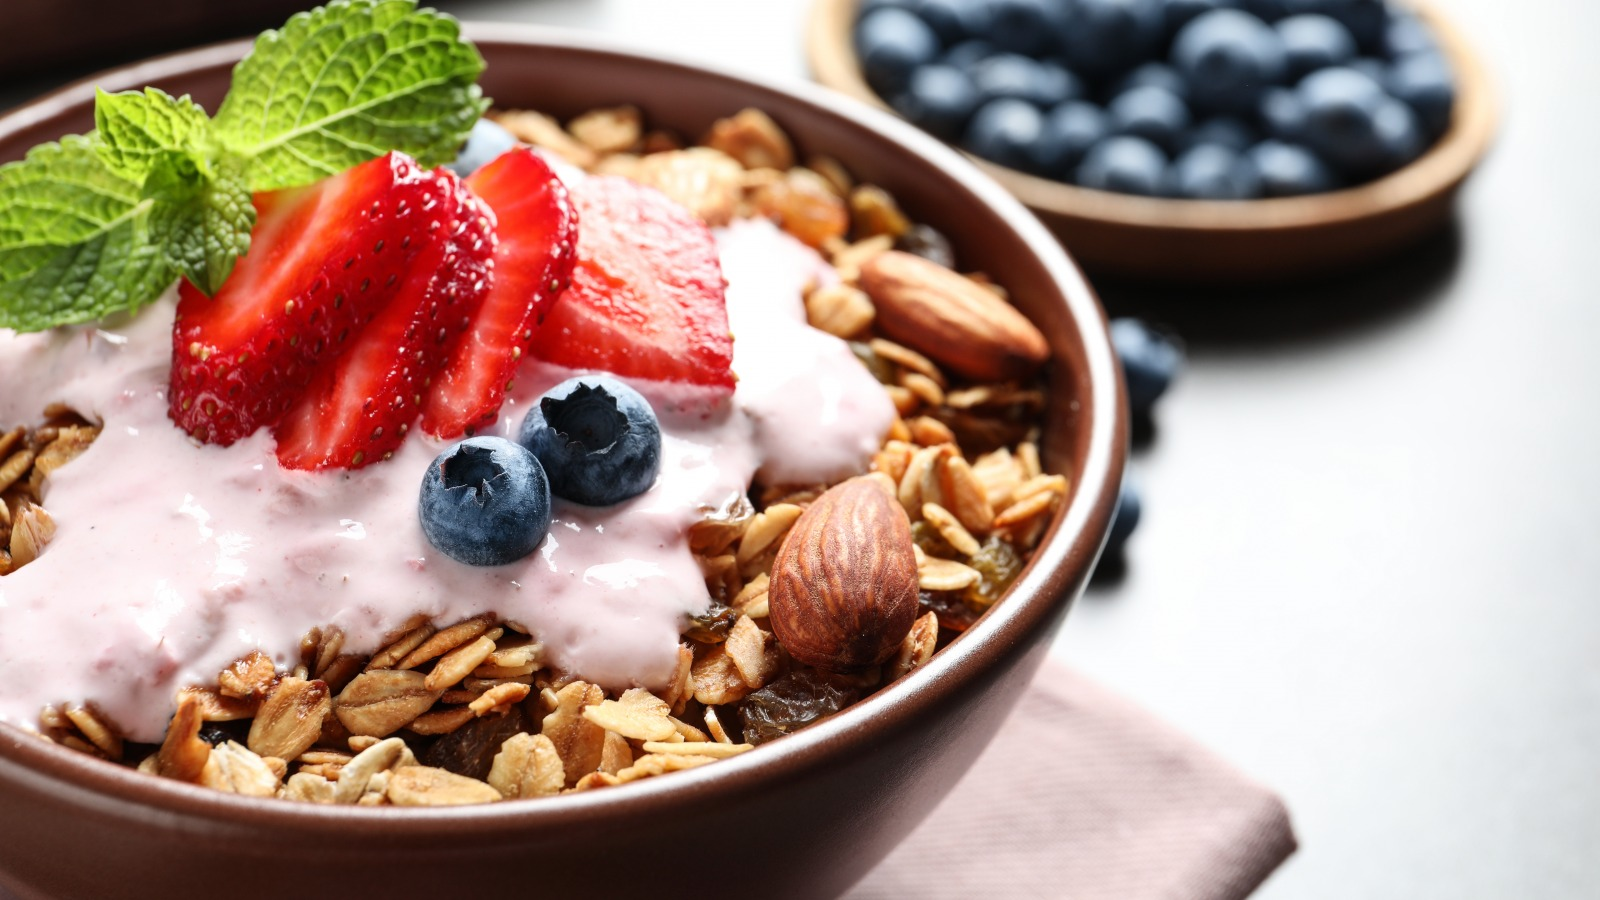 Nutrition Expert Exposes The Cereals That Trick You Into Thinking They're Healthy